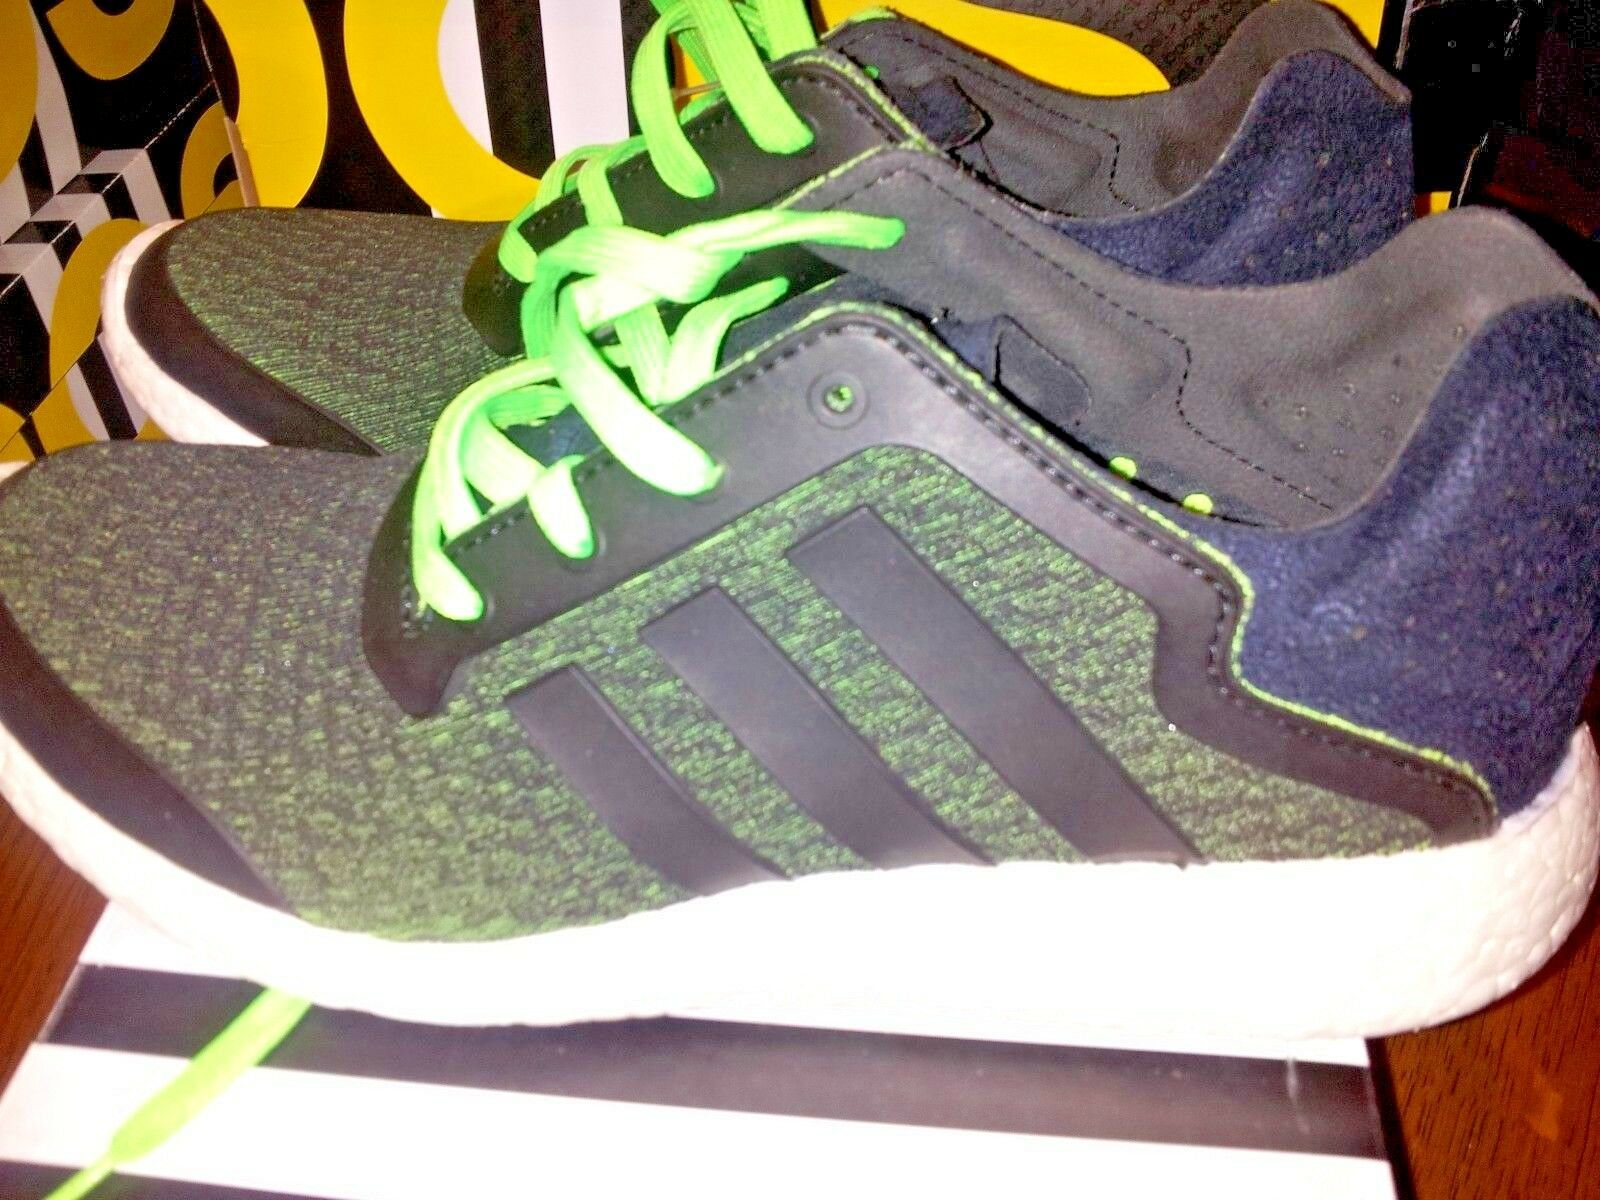 Adidas pureboost Reveal Men's Running shoes Size 10 green black please read info